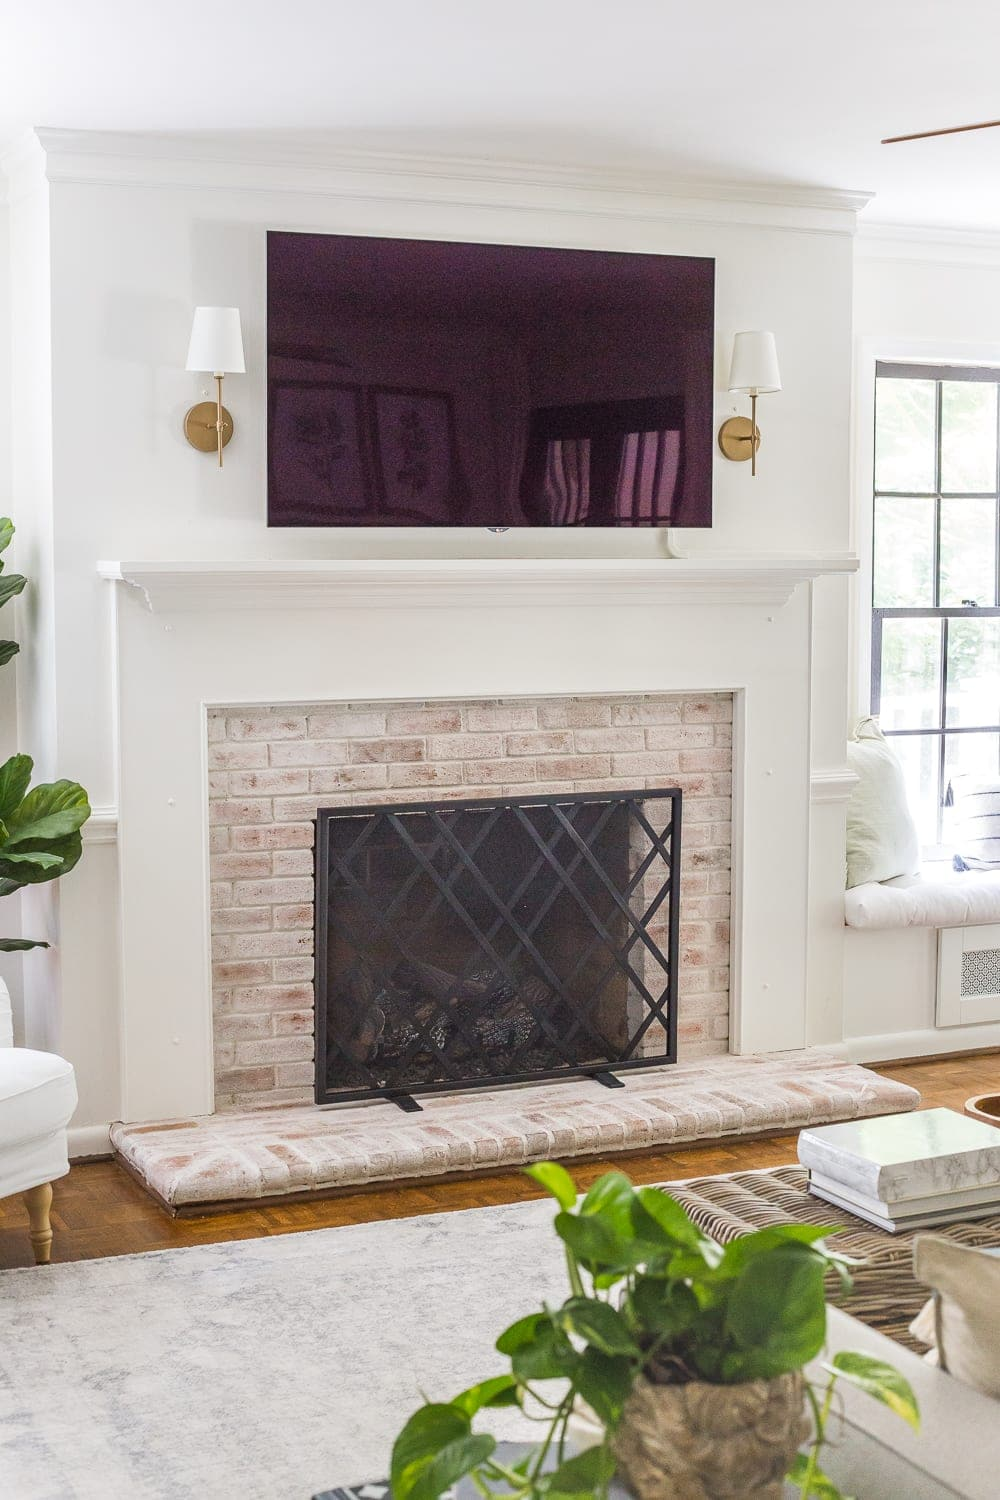 Keep your mantel simple and minimalist with just a pair of sconces on either side of your TV.